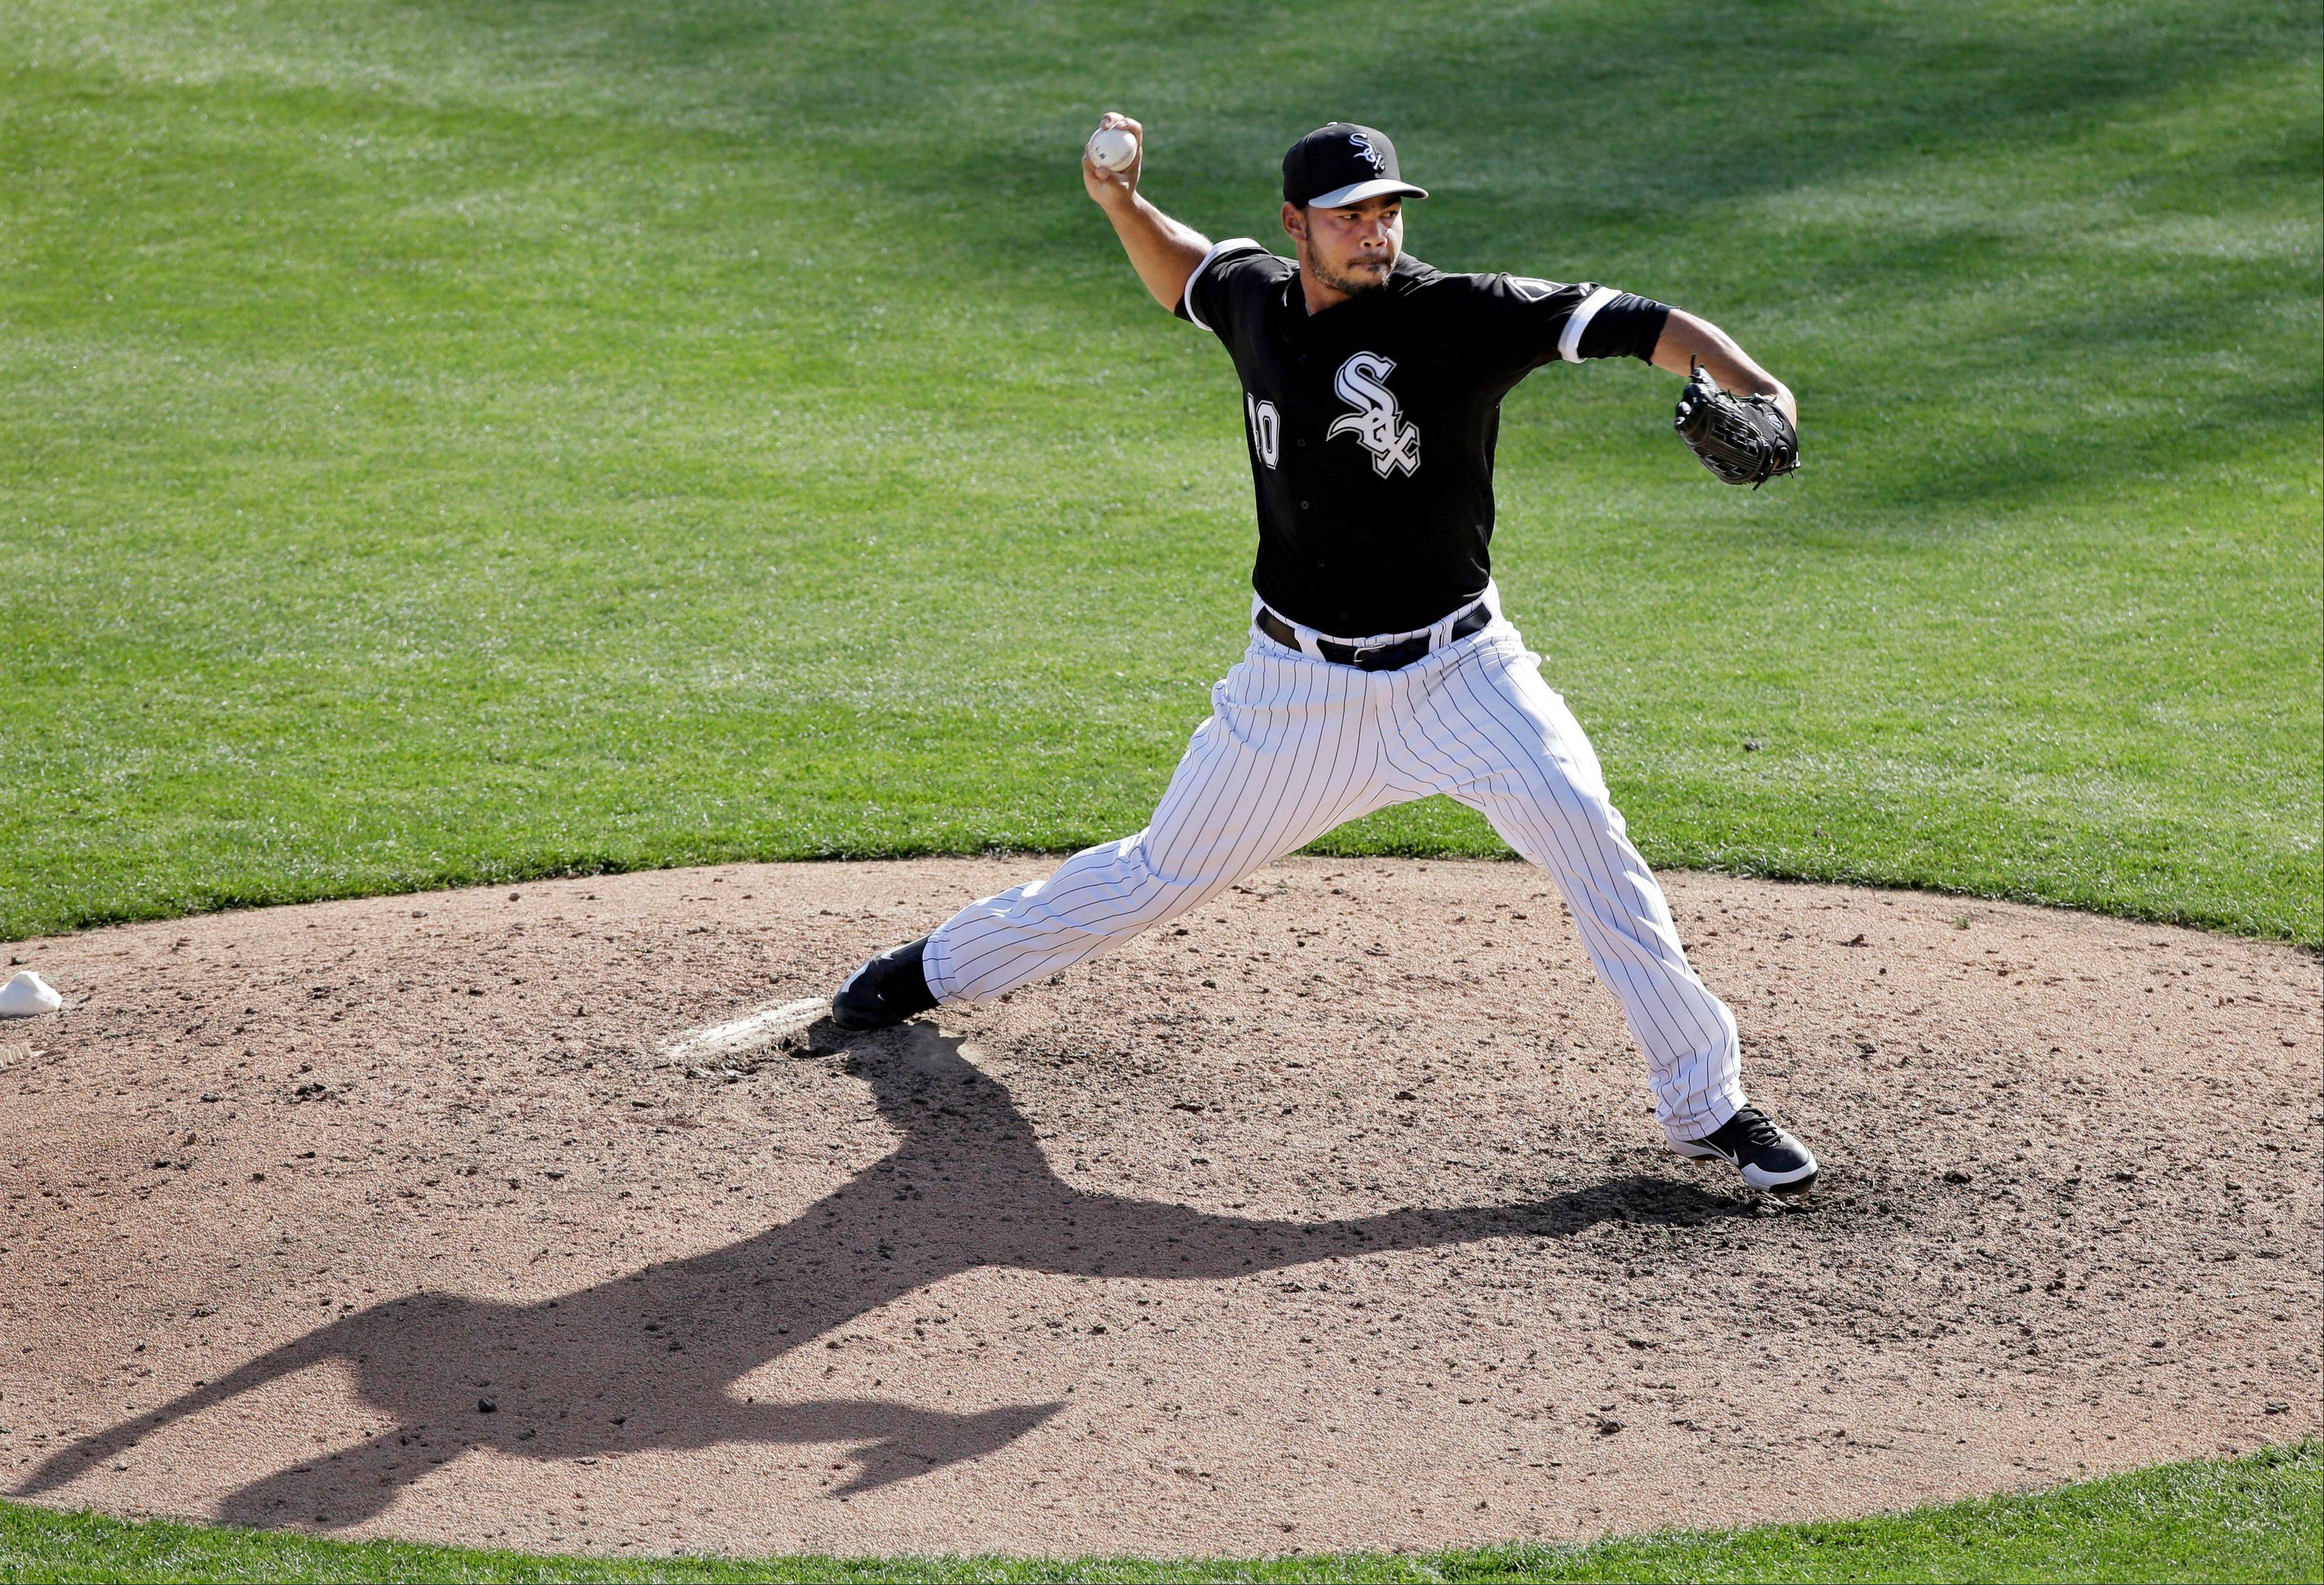 Chicago White Sox's Ramon Troncoso pitches against the Cincinnati Reds in the ninth inning of a spring training baseball game Saturday, March 2, 2013, in Glendale, Ariz. The White Sox defeated the Reds 4-0. (AP Photo/Mark Duncan)